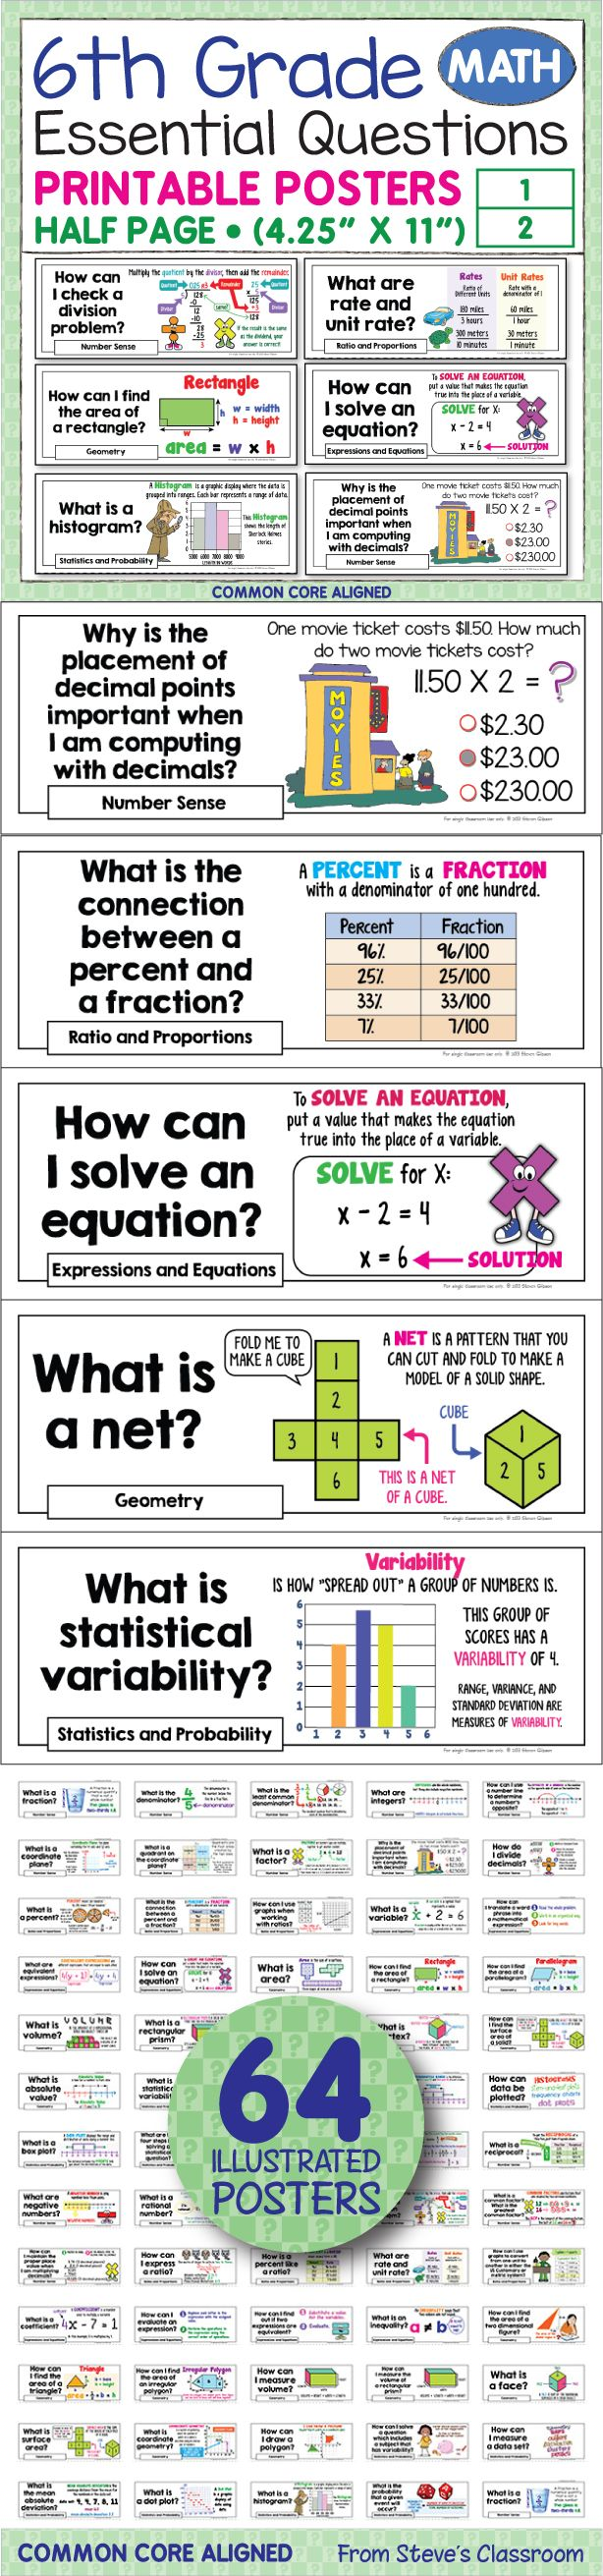 151 best Sixth Grade Math images on Pinterest | Math resources, 4th ...